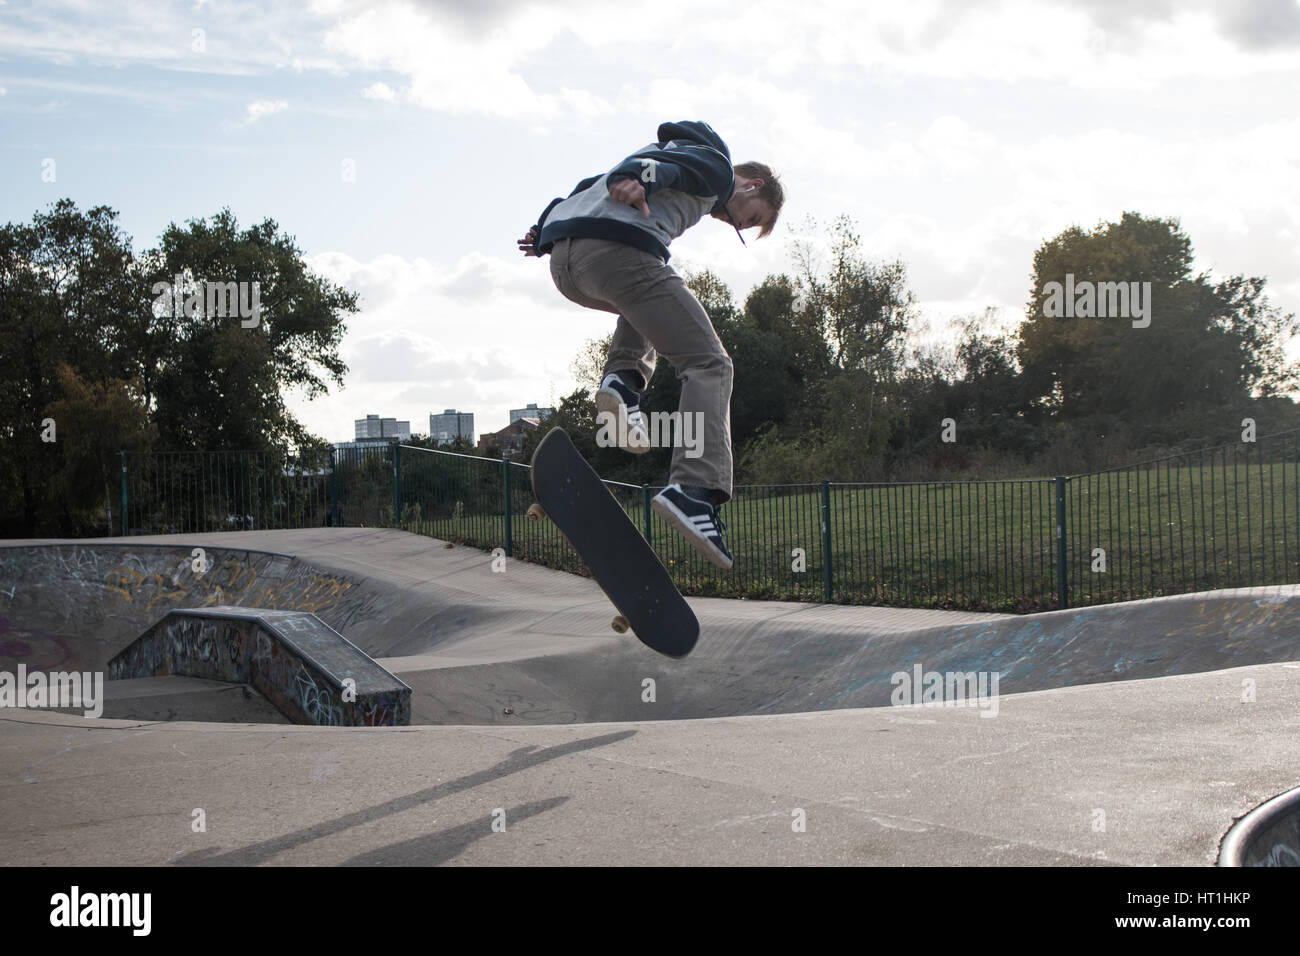 skater jumping at the skate ground in London - Stock Image